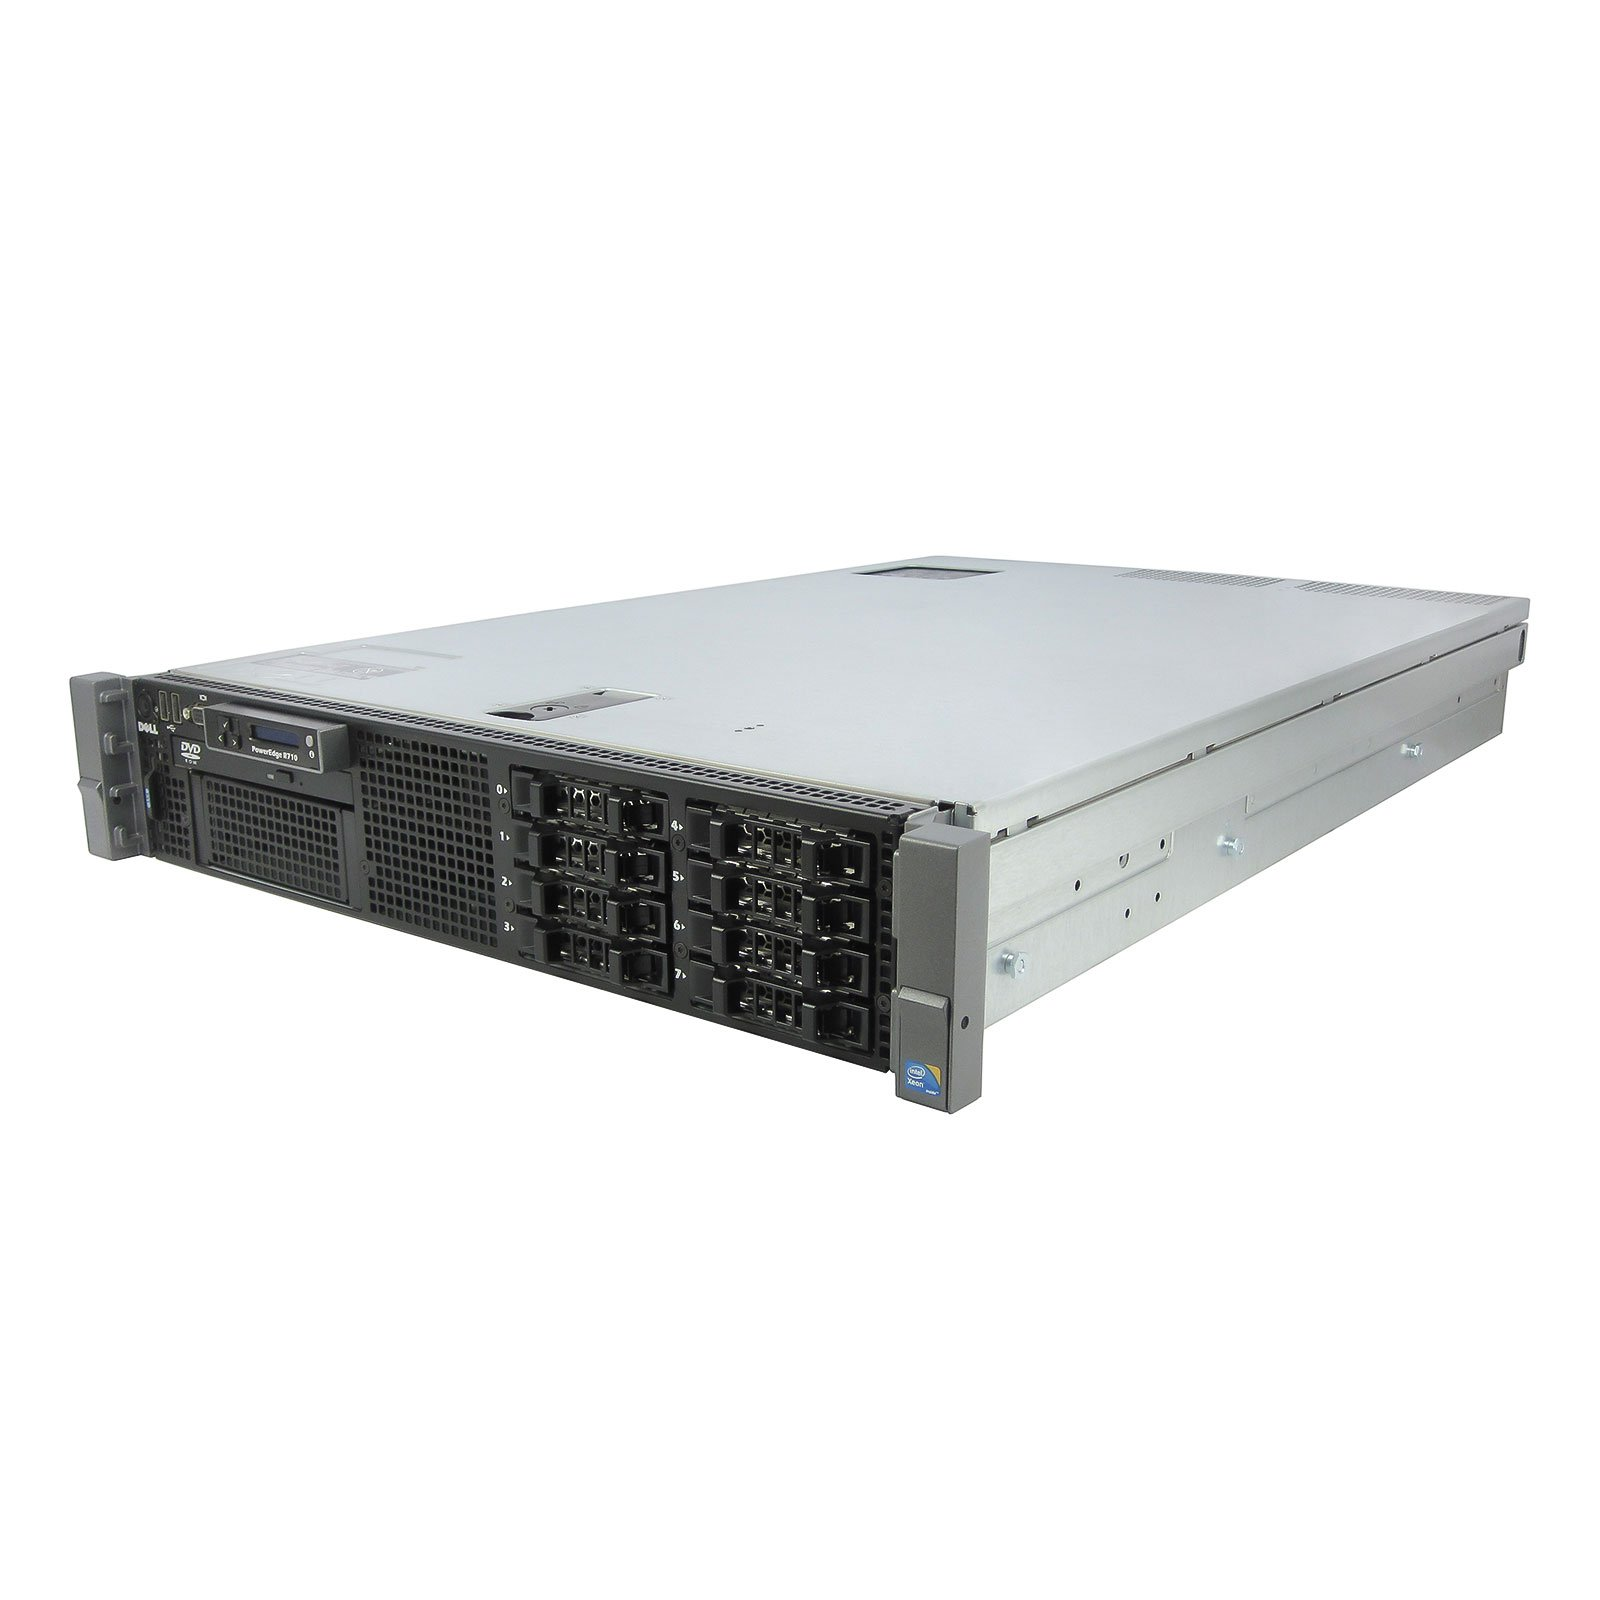 DELL PowerEdge R710 2 x 2.53Ghz E5649 6 Core 128GB 8 x 146GB 10K SAS (Certified Refurbished)